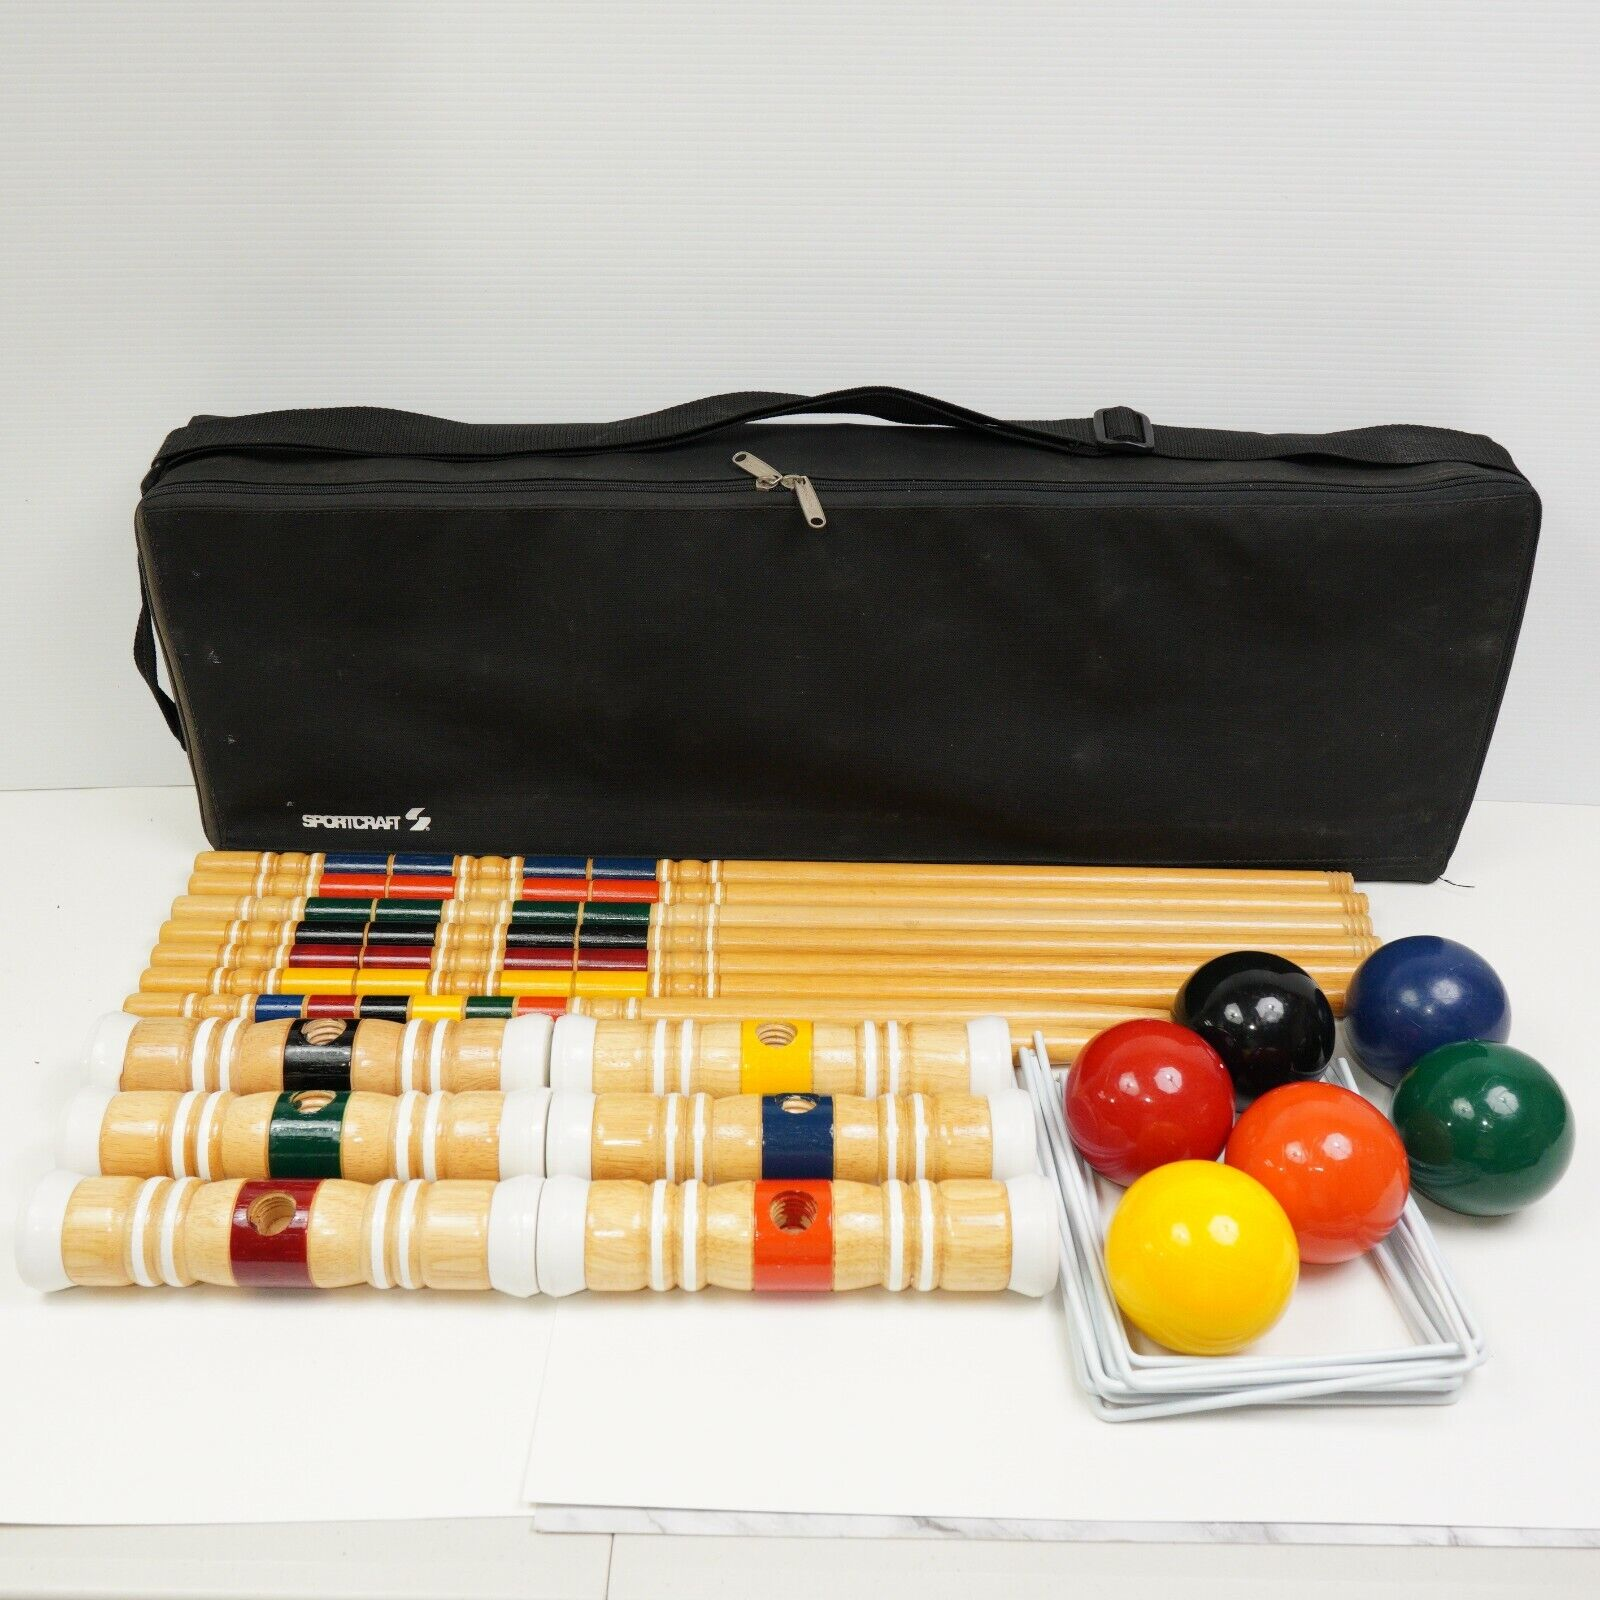 Sportcraft Croquet Complete Set 6 Players With Carrying Case